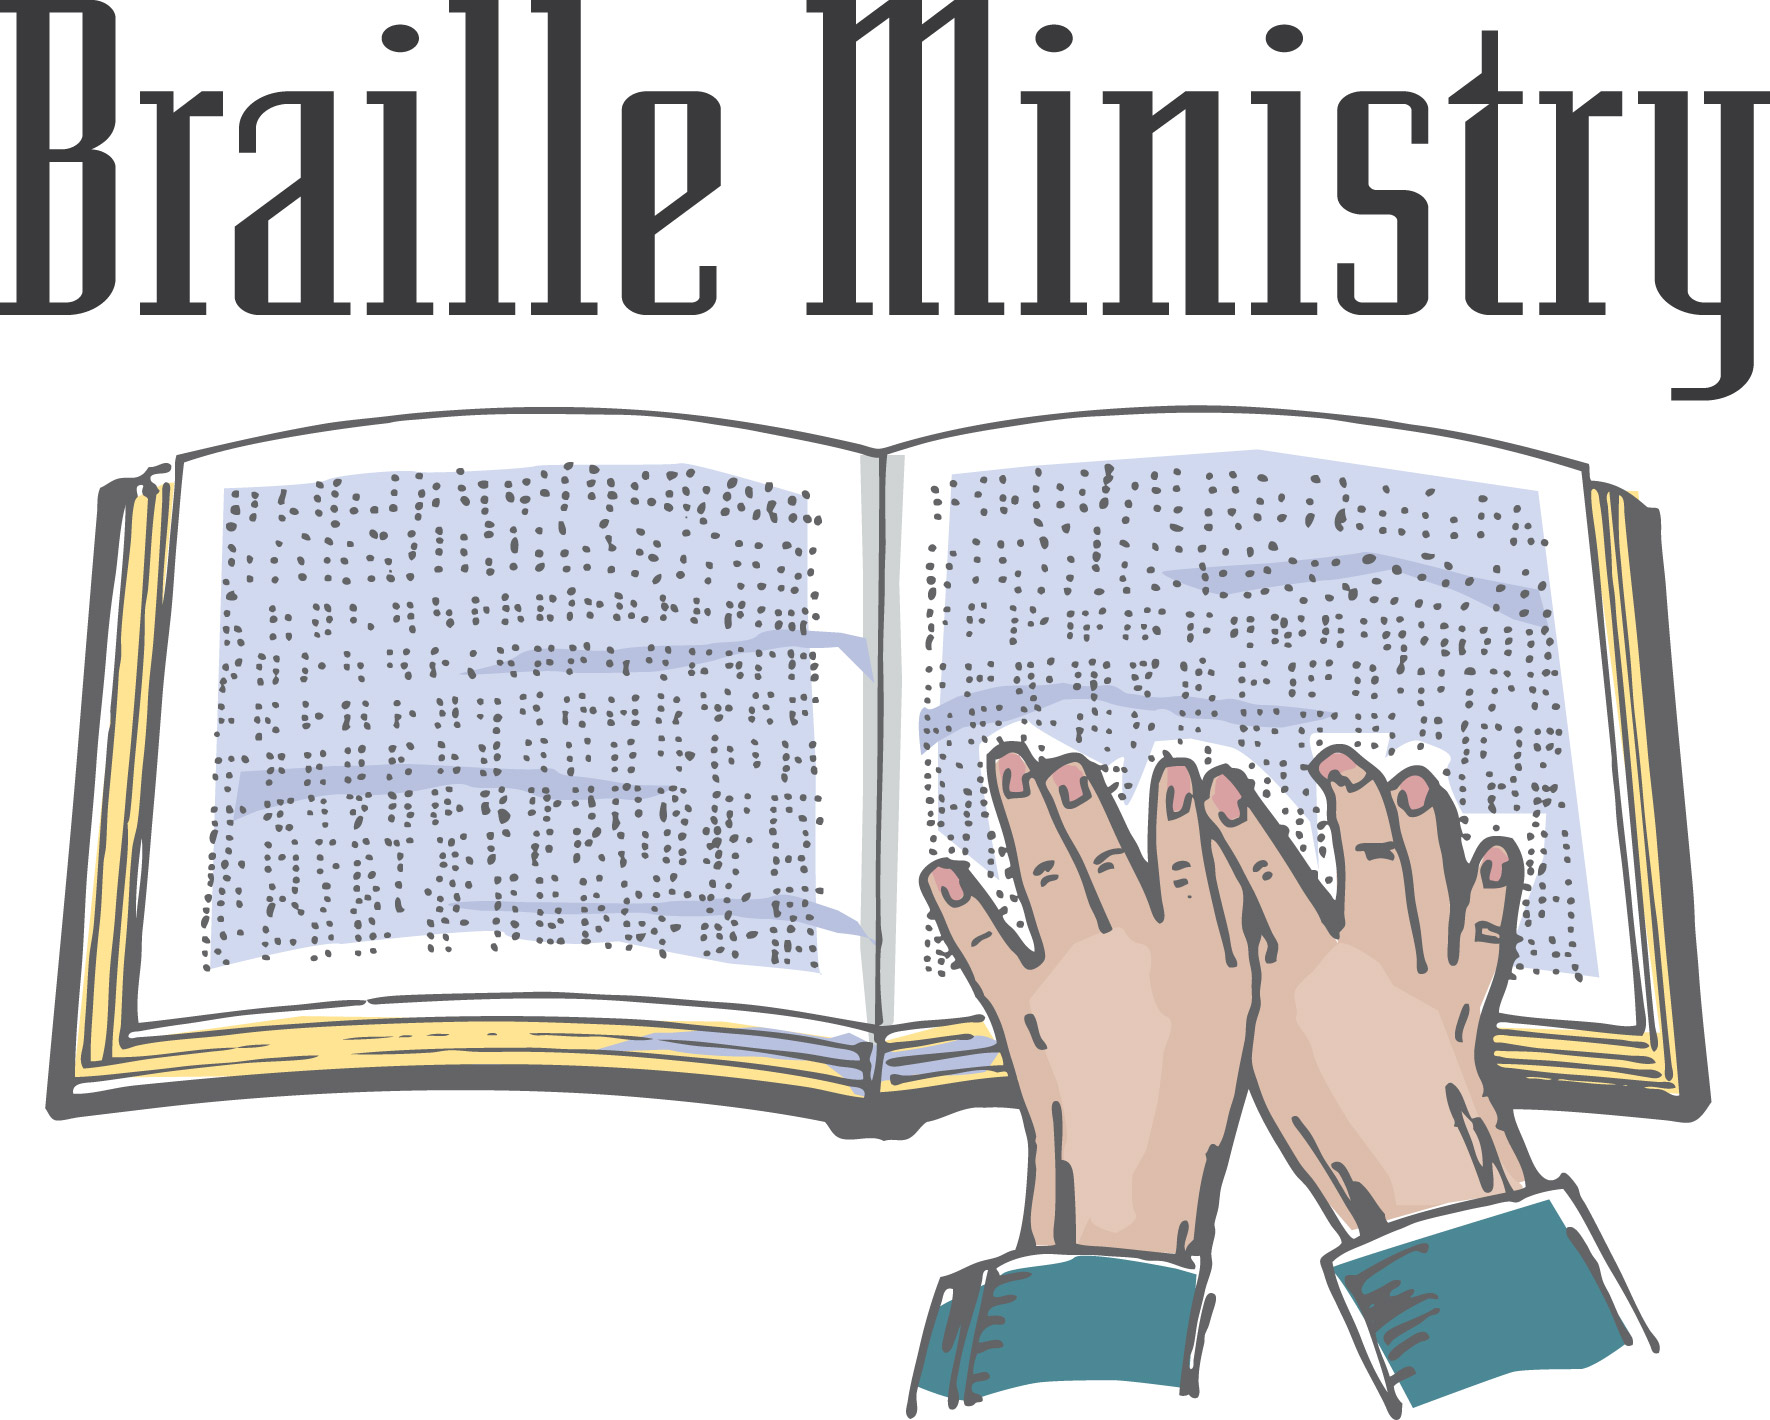 Hands with book reading braille and words Braille Ministry